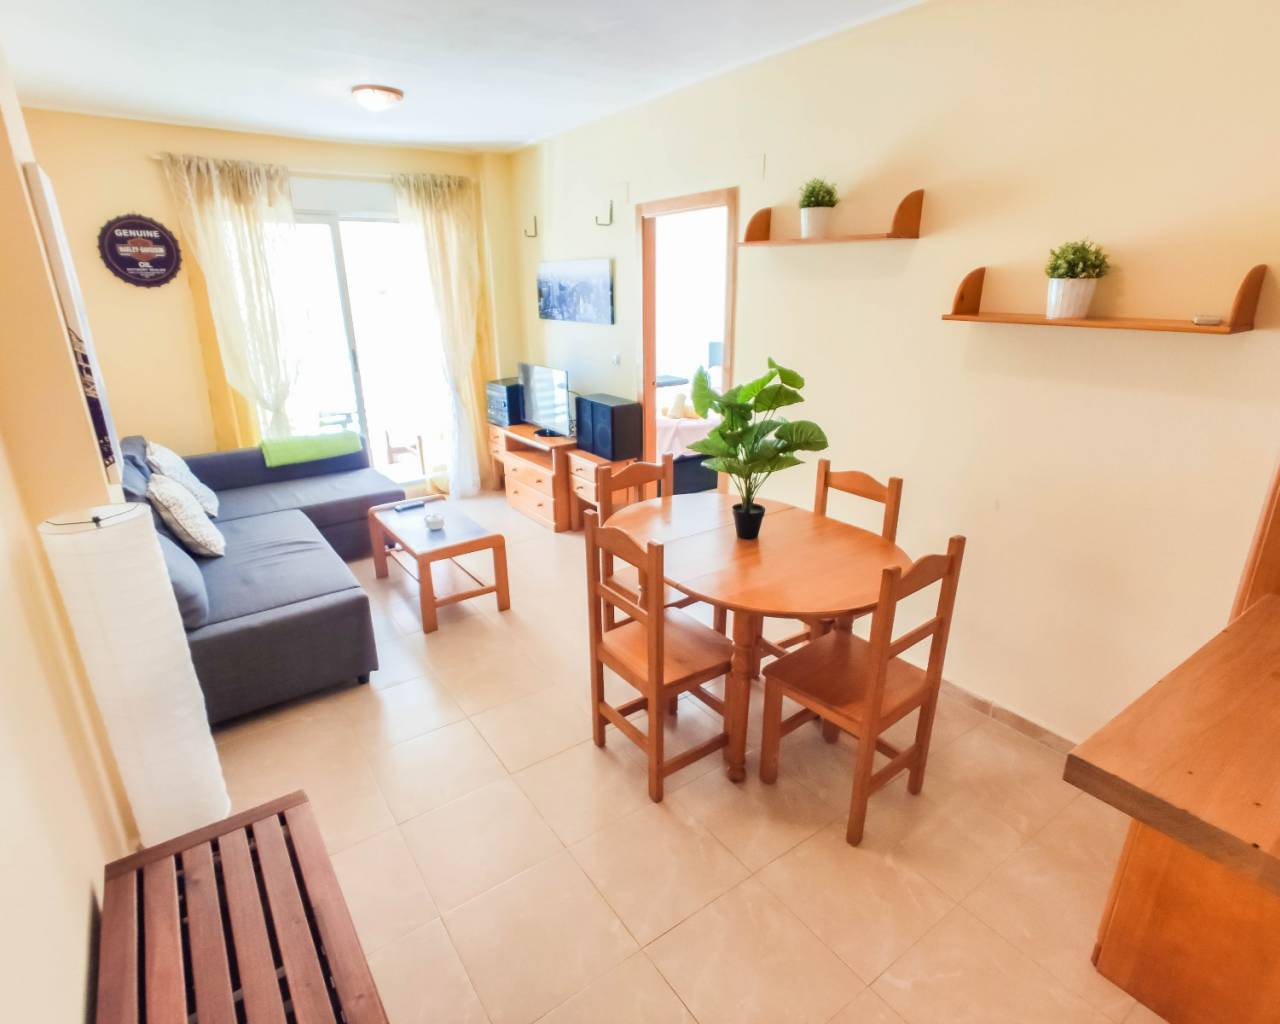 Apartment - Short term rental - Torrevieja - Center